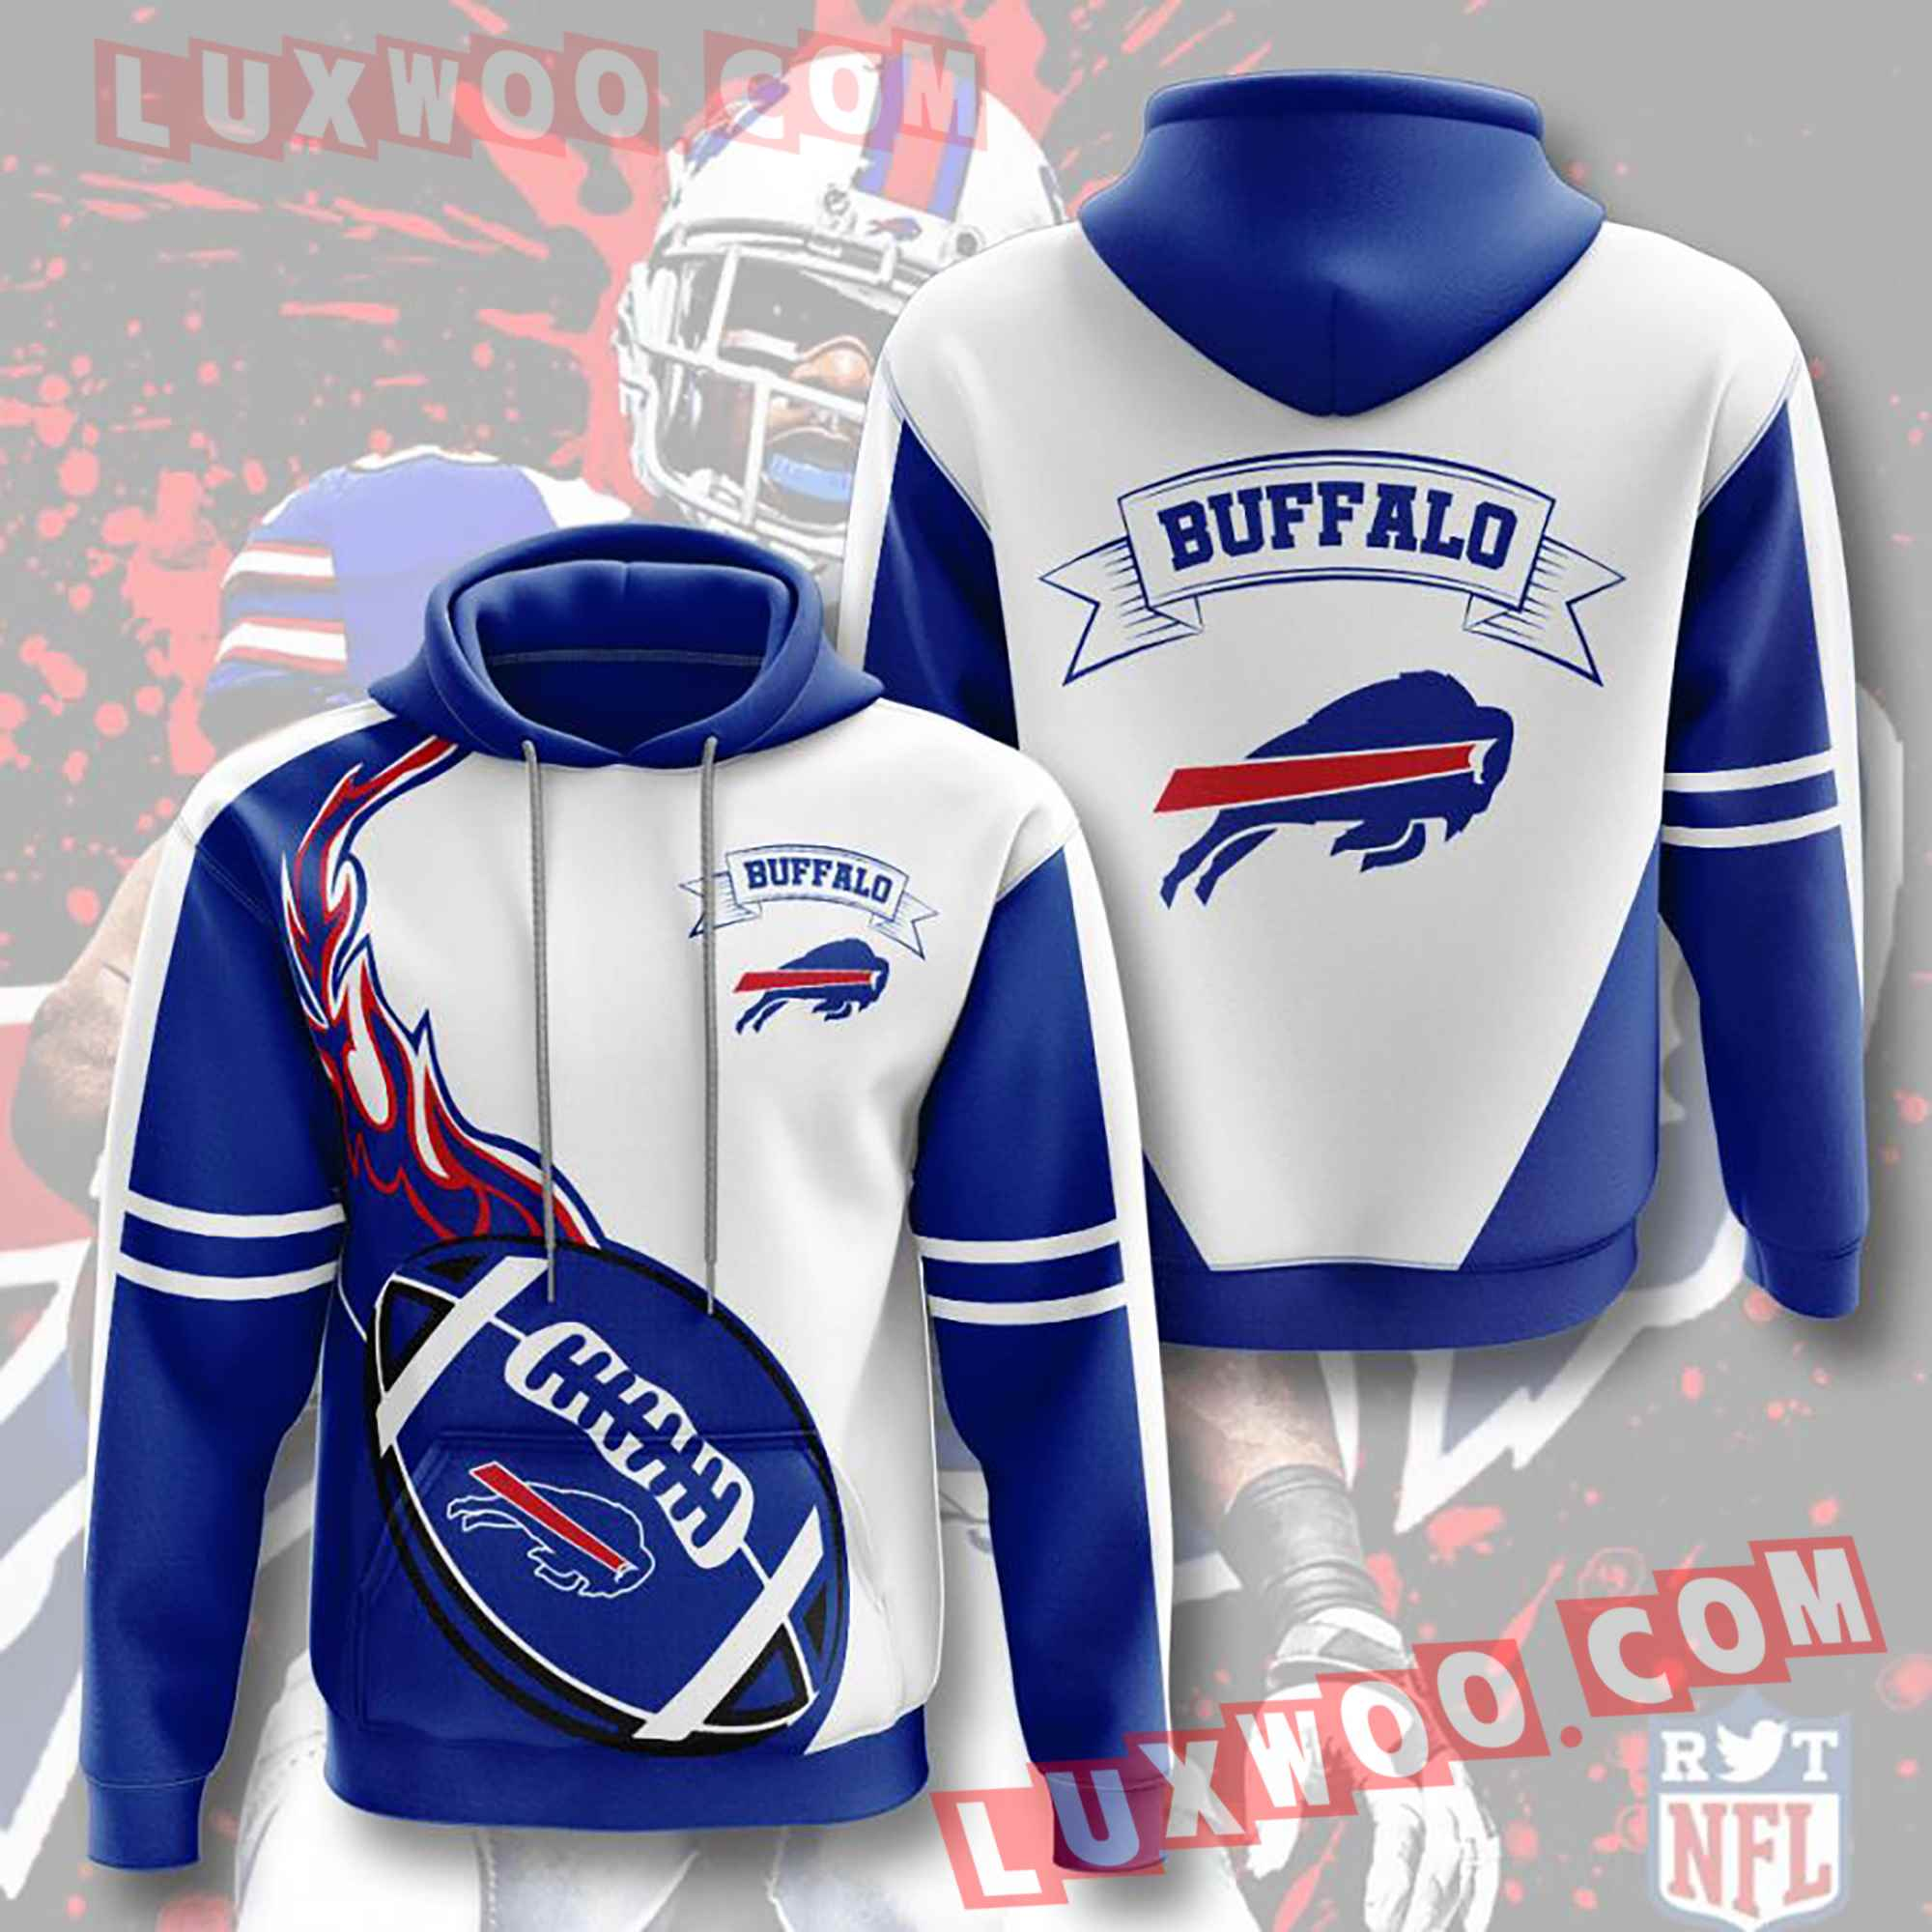 Nfl Buffalo Bills Hoodies Custom All Over Print 3d Pullover Hoodie V5